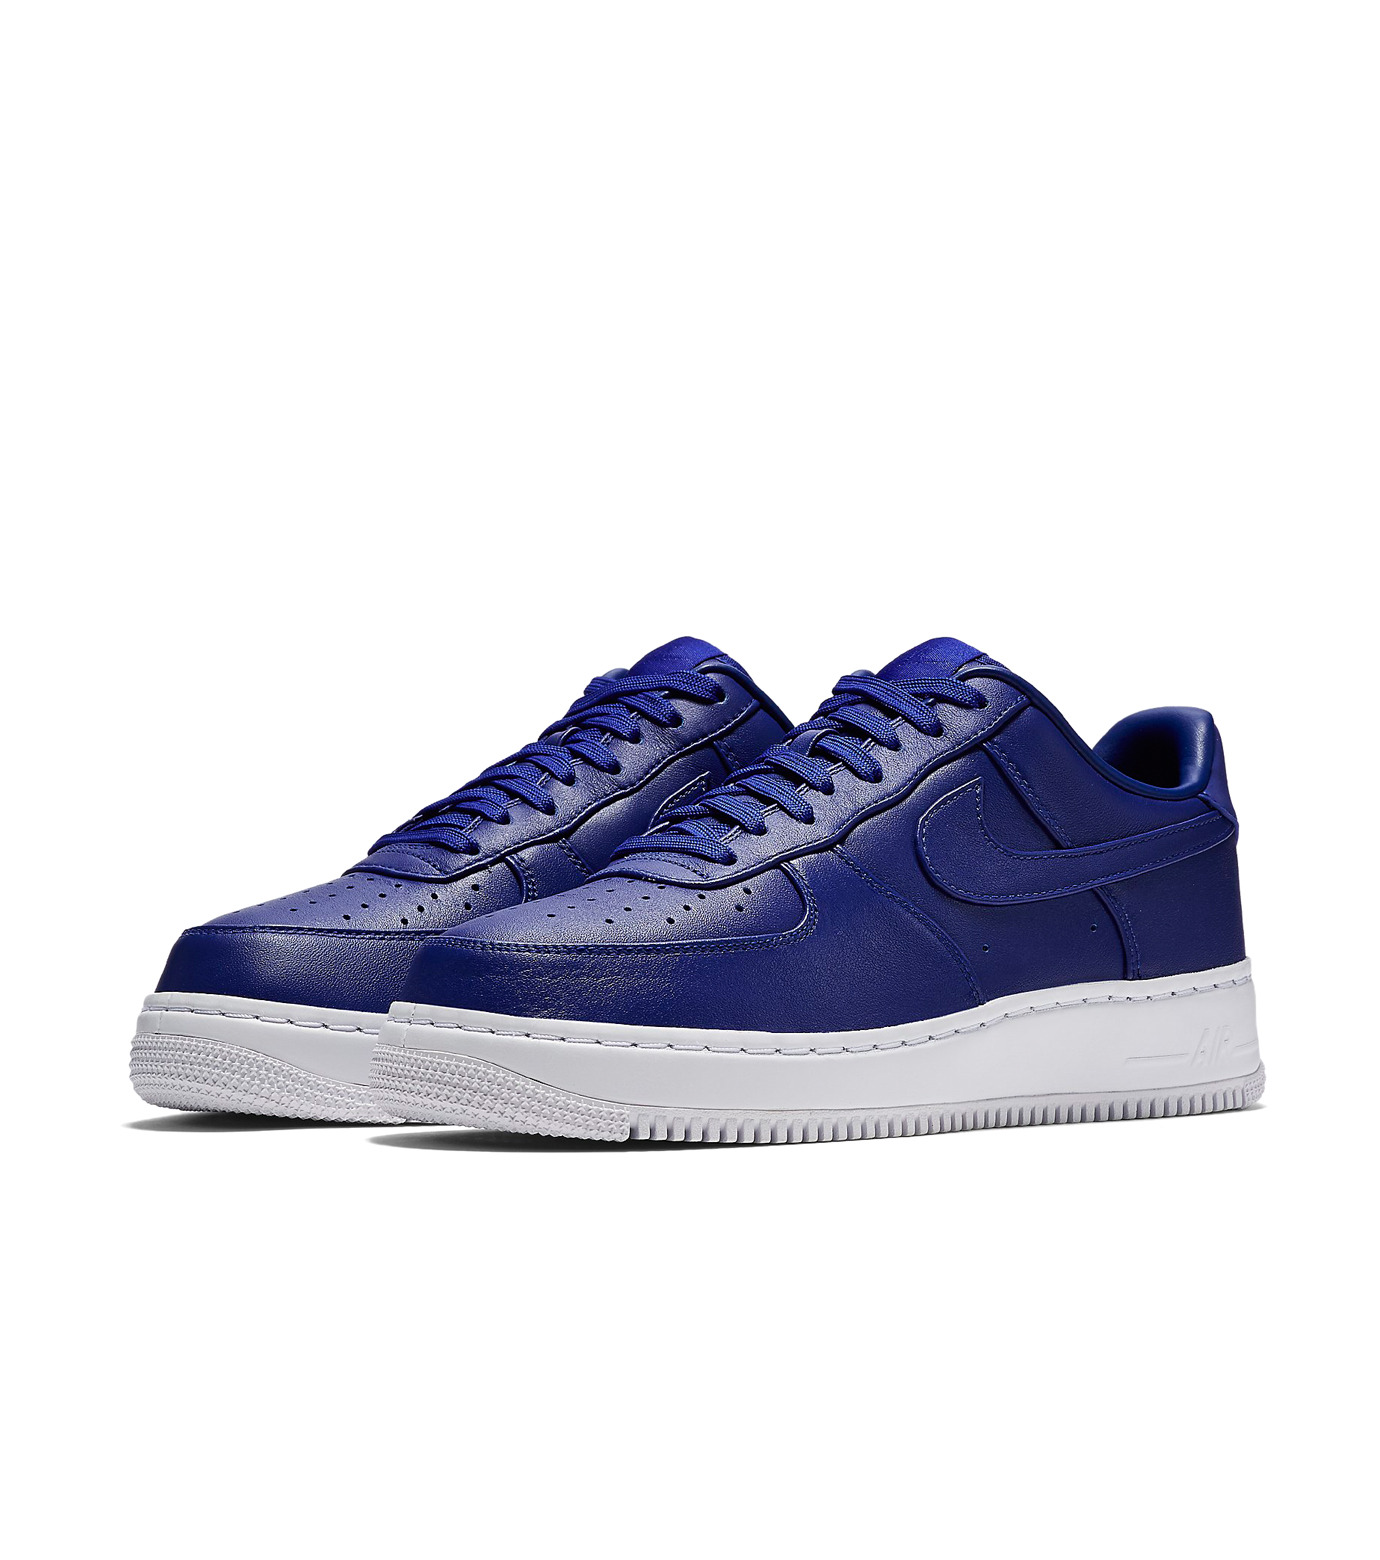 NIKE(ナイキ)のAIR FORCE 1 LOW-BLUE(シューズ/shoes)-555106-402-92 拡大詳細画像3